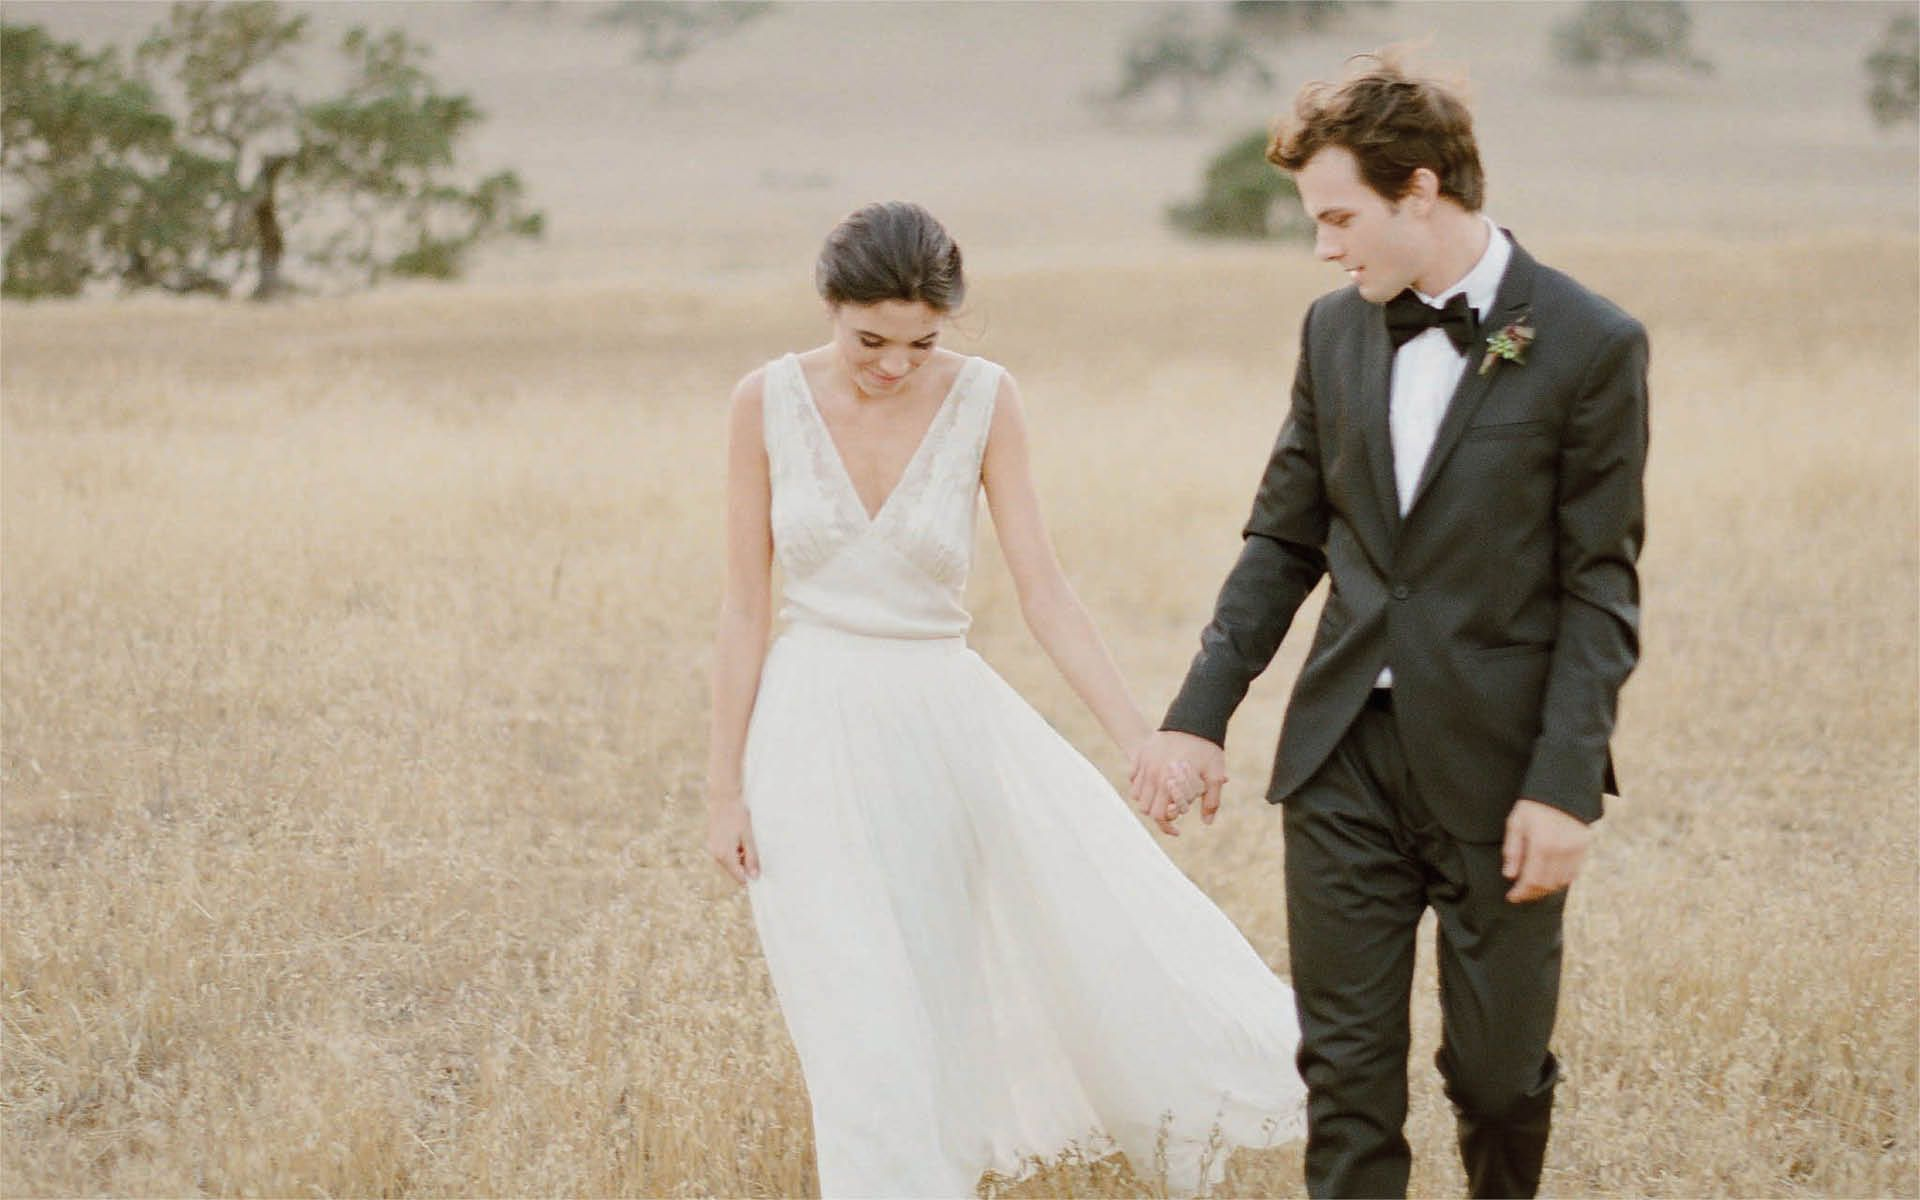 Picture Perfect Wedding: Top Tips From 3 Professional Studios